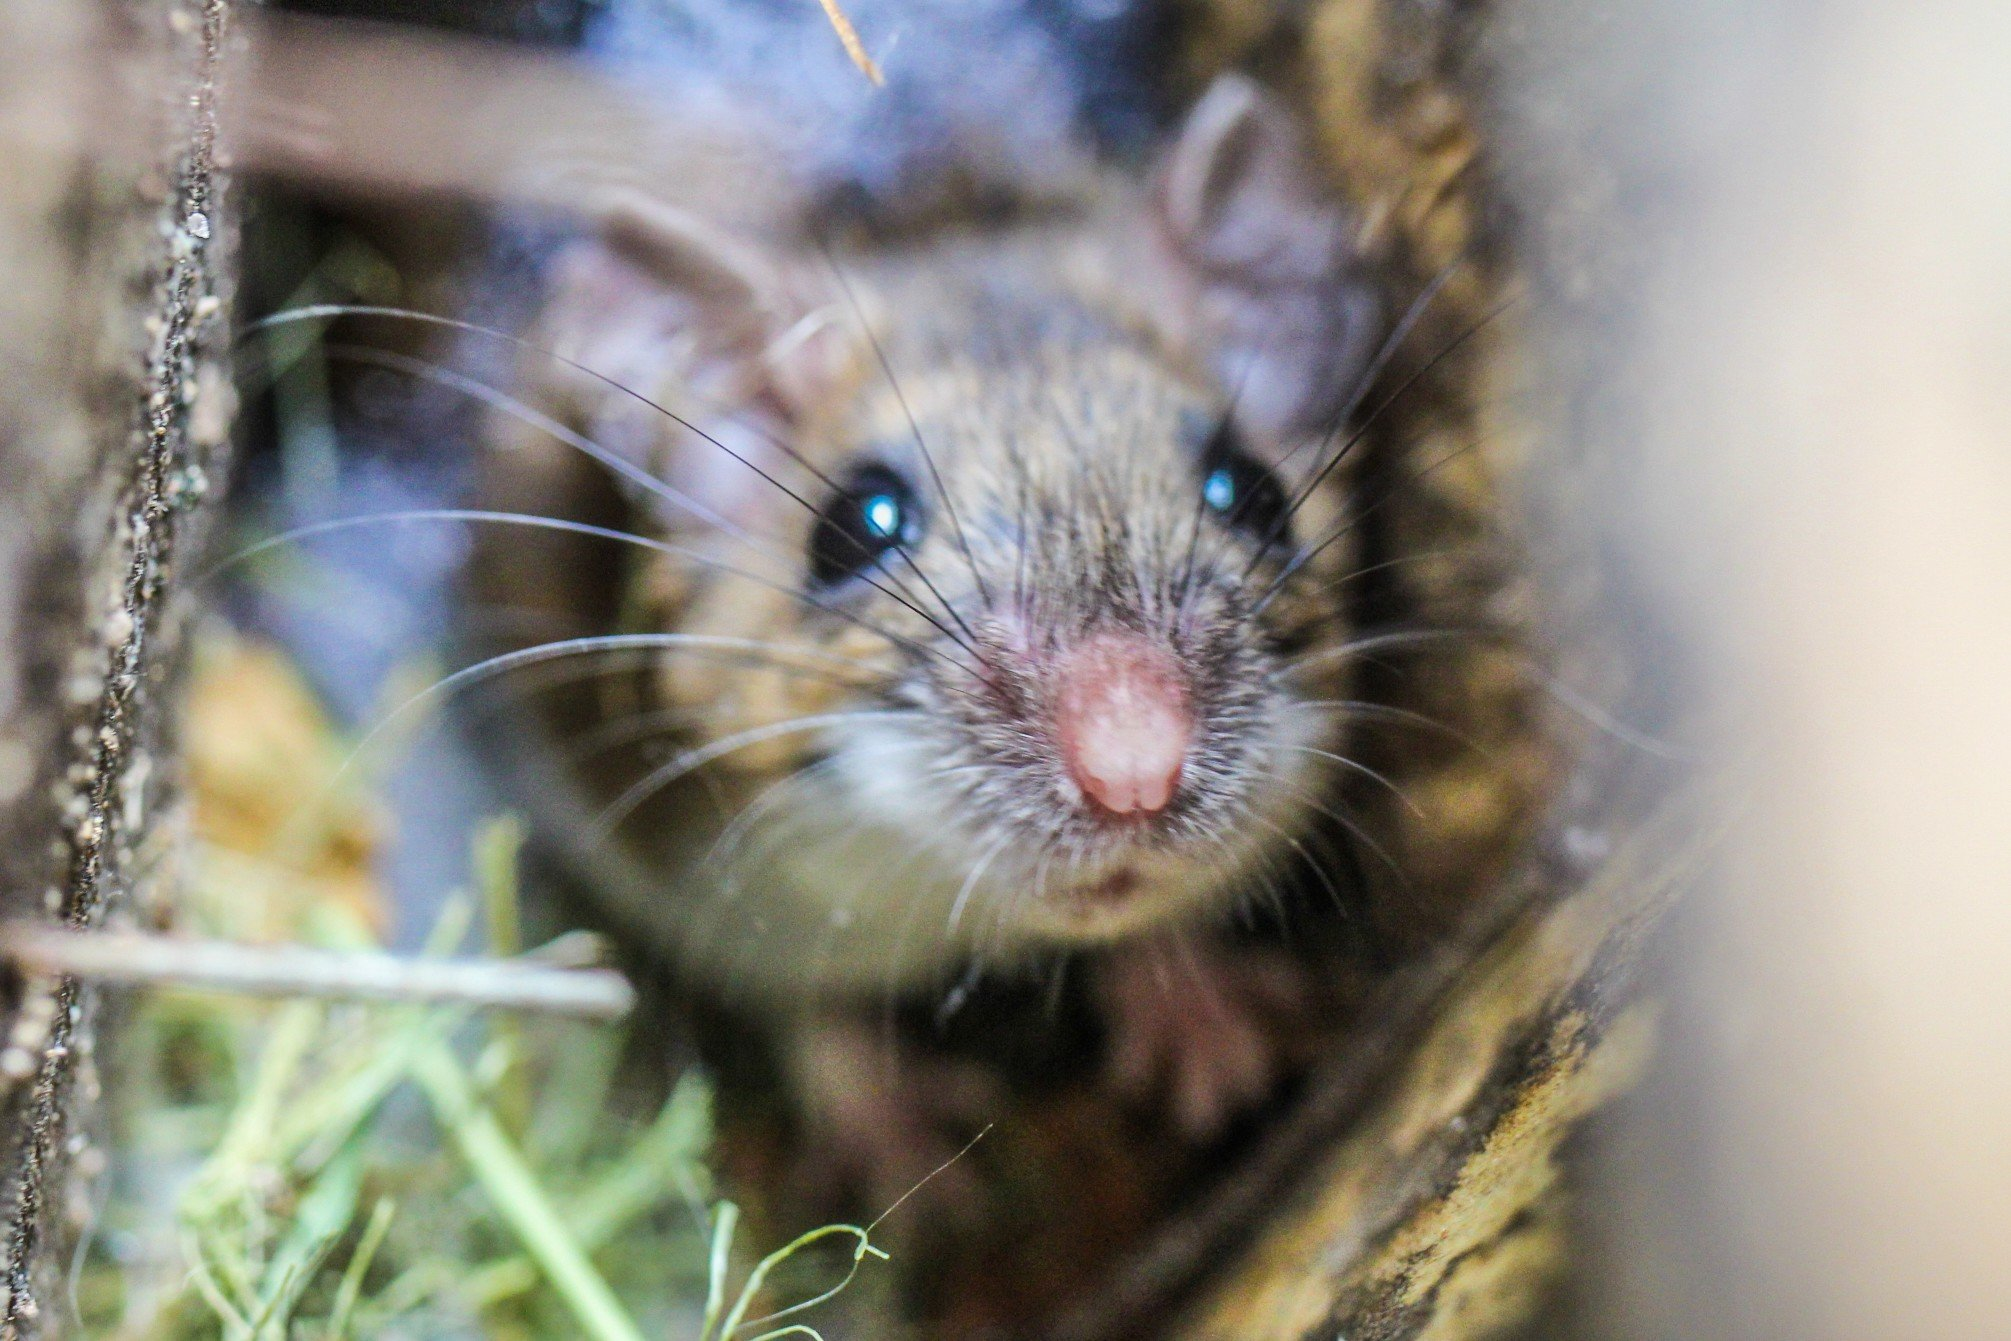 a-little-field-mouse-found-an-empty-birdhouse-and-decided-to-move-in_t20_2WWkb0.jpg